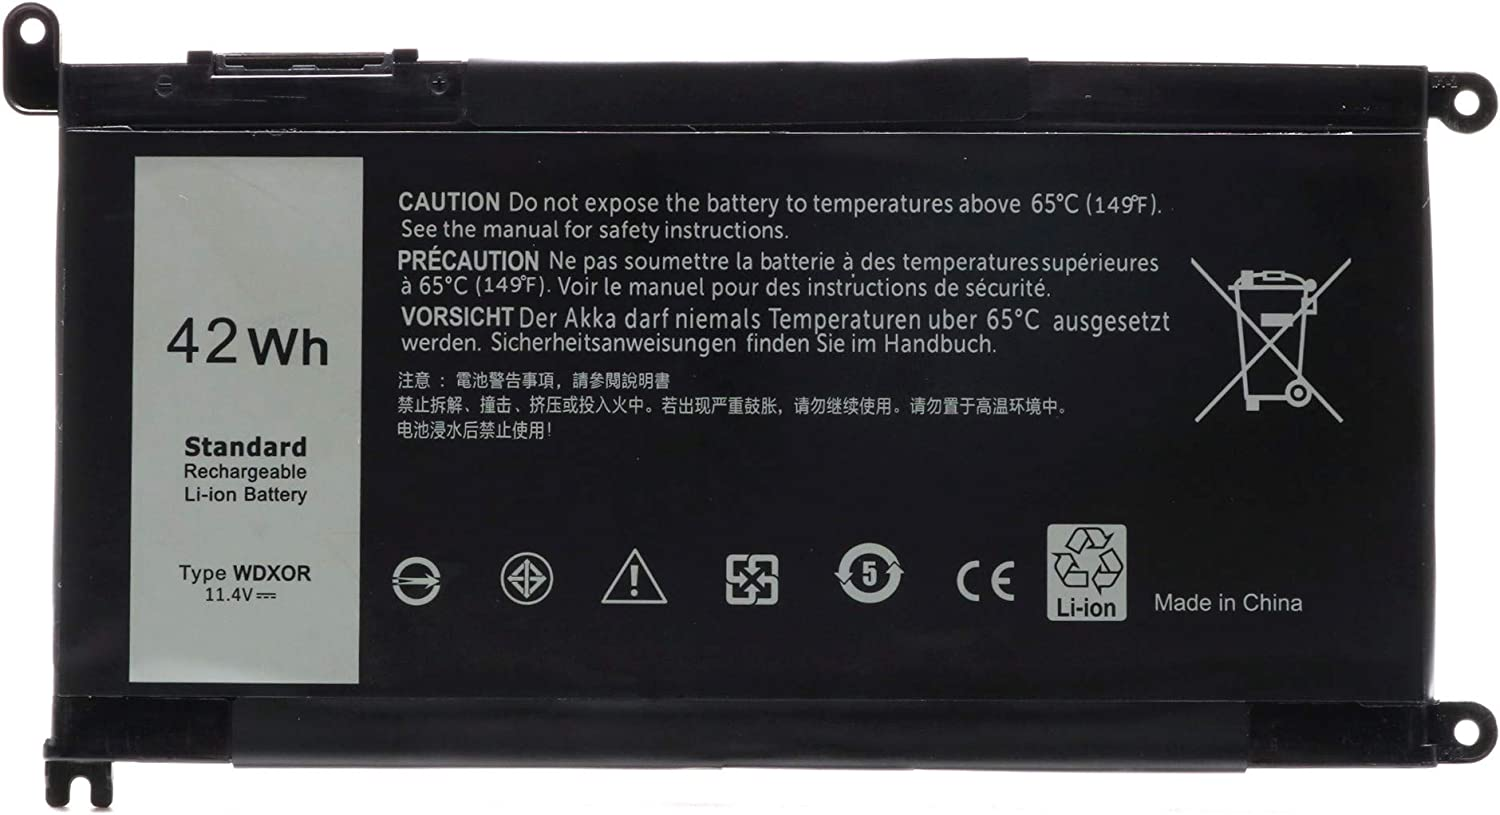 WDX0R Laptop Battery for Dell Inspiron 15 5000 7000 Series 5565 5567 5568 5578 7560 7569 7570 7579 Notebook Fits 3CRH3 T2JX4 FC92N CYMGM - 4Cell/11.4V/42Wh